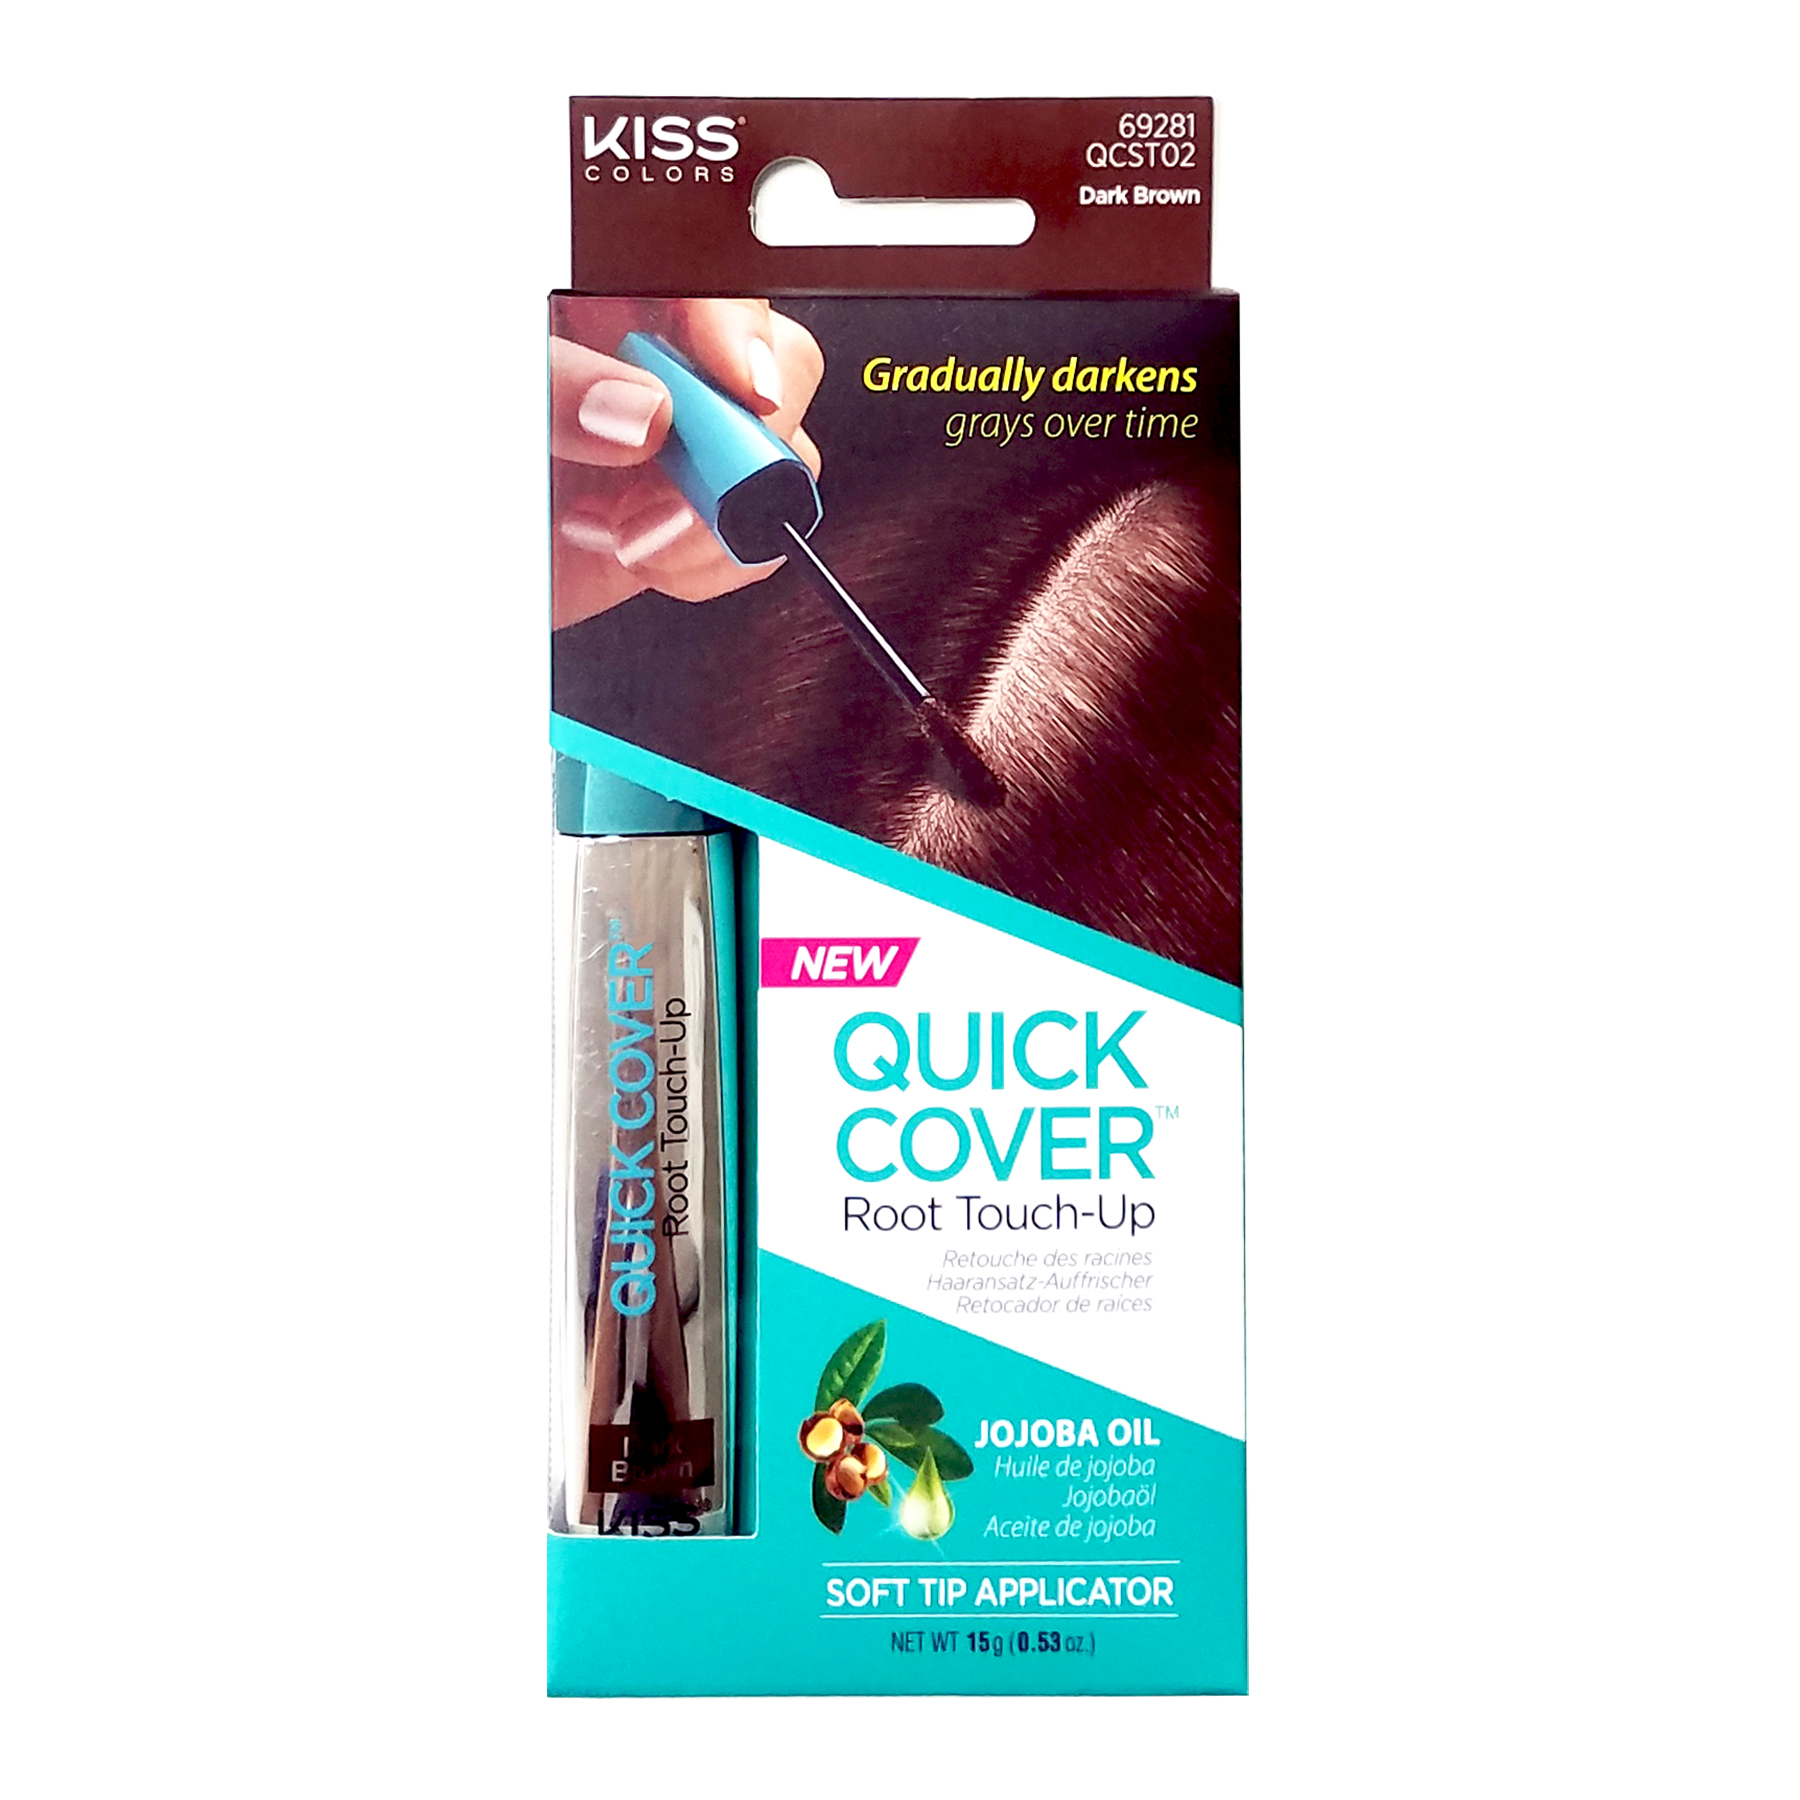 KISS-QUICK-COVER-ROOT-TOUCH-UP-SOFT-TIP-APPLICATOR-QCST-TEMPORARY-HAIR-COLOR